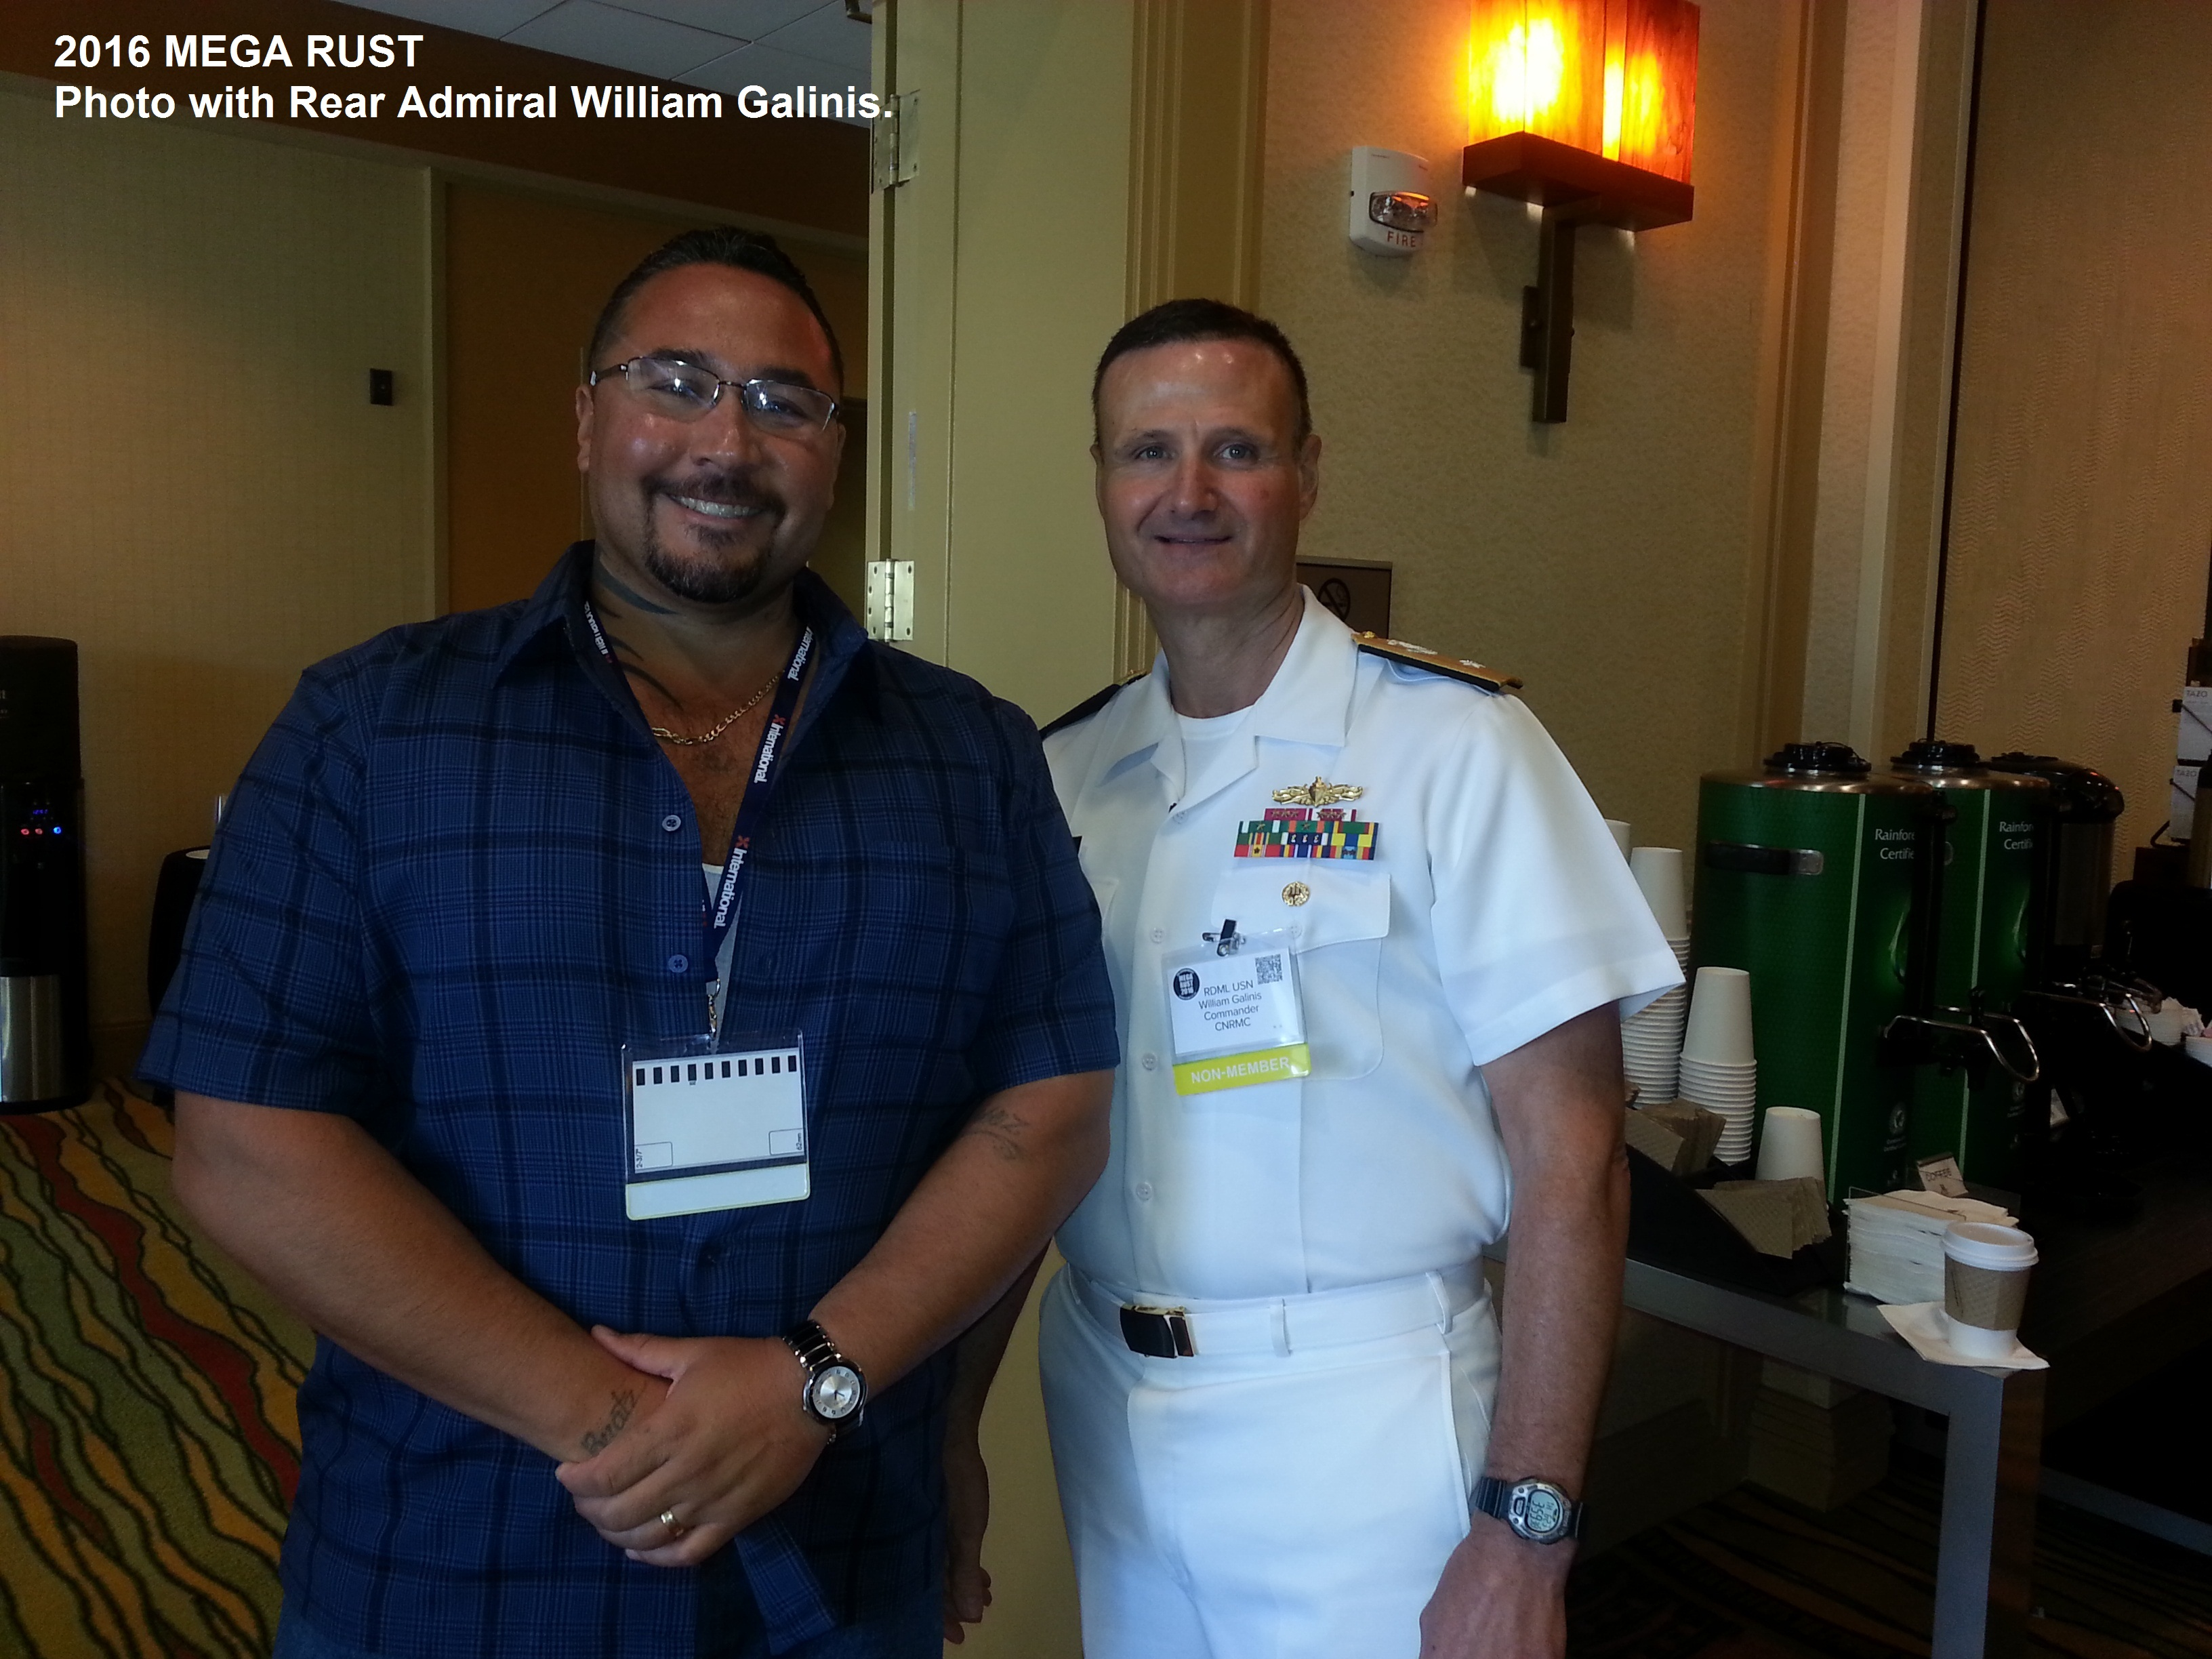 photo with rear admiral William Galinis at Mega Rust -3.jpg